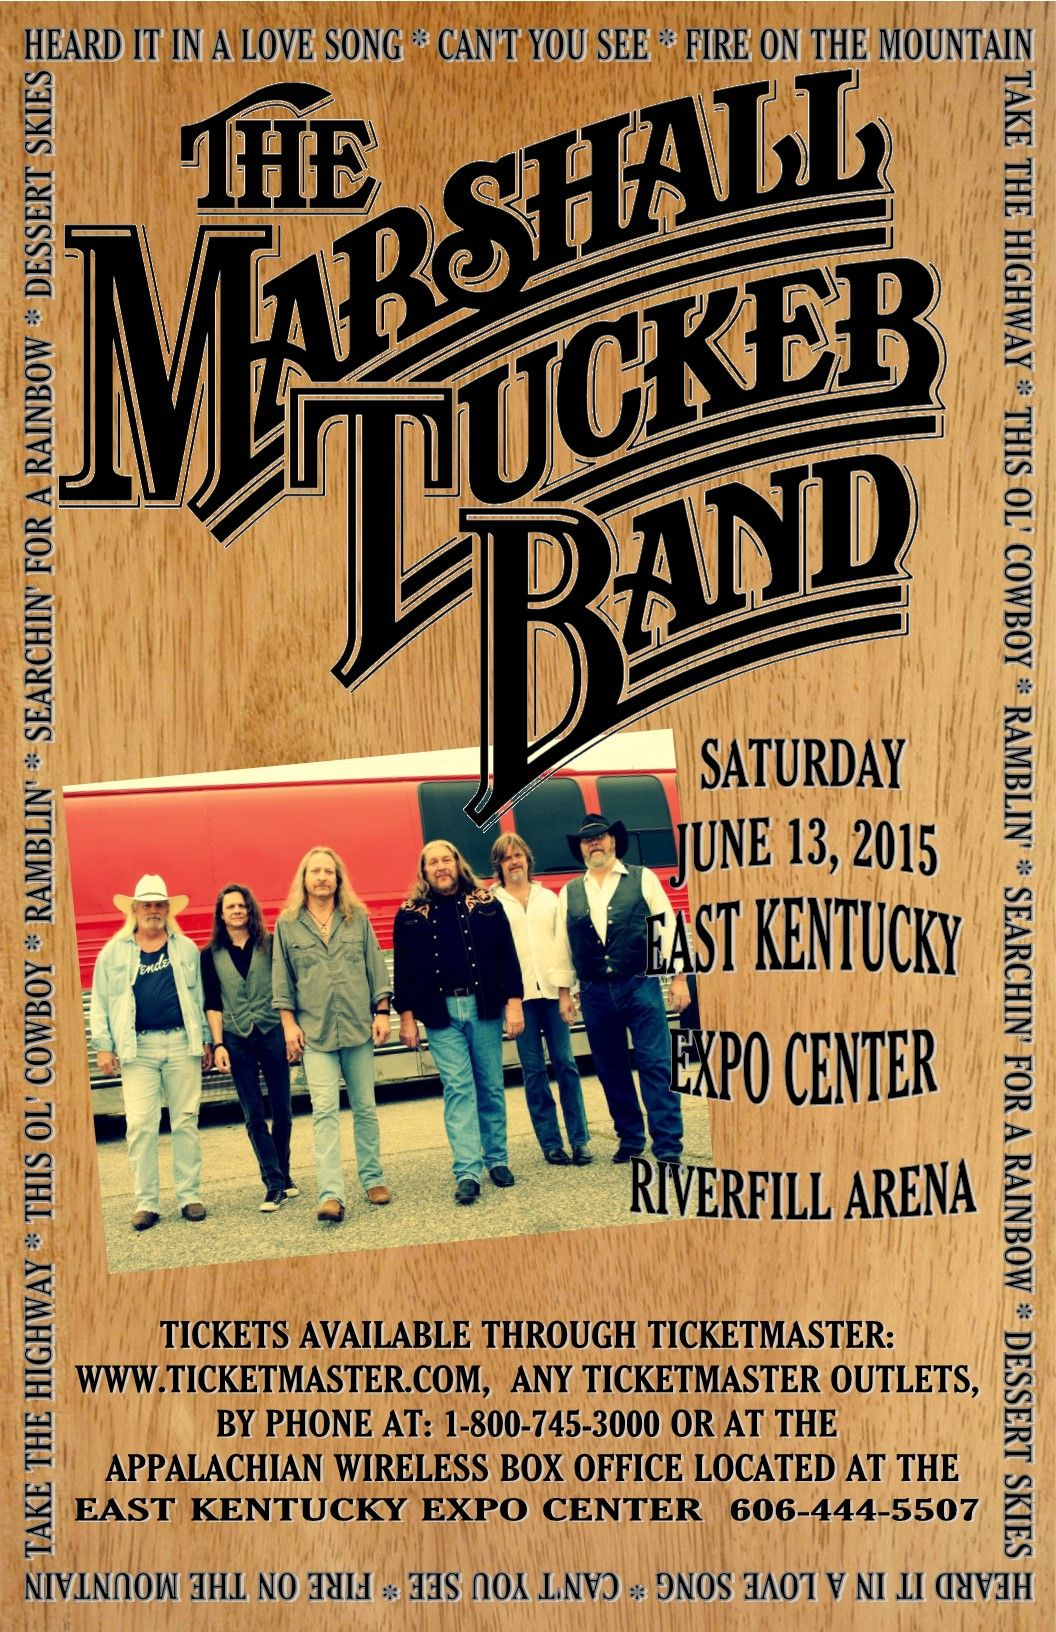 The Marshall Tucker Band, June 13 at the Riverfill Arena (Event may be moved inside the East Kentucky Expo Center if weather is bad.)  Tickets are on-sale now.